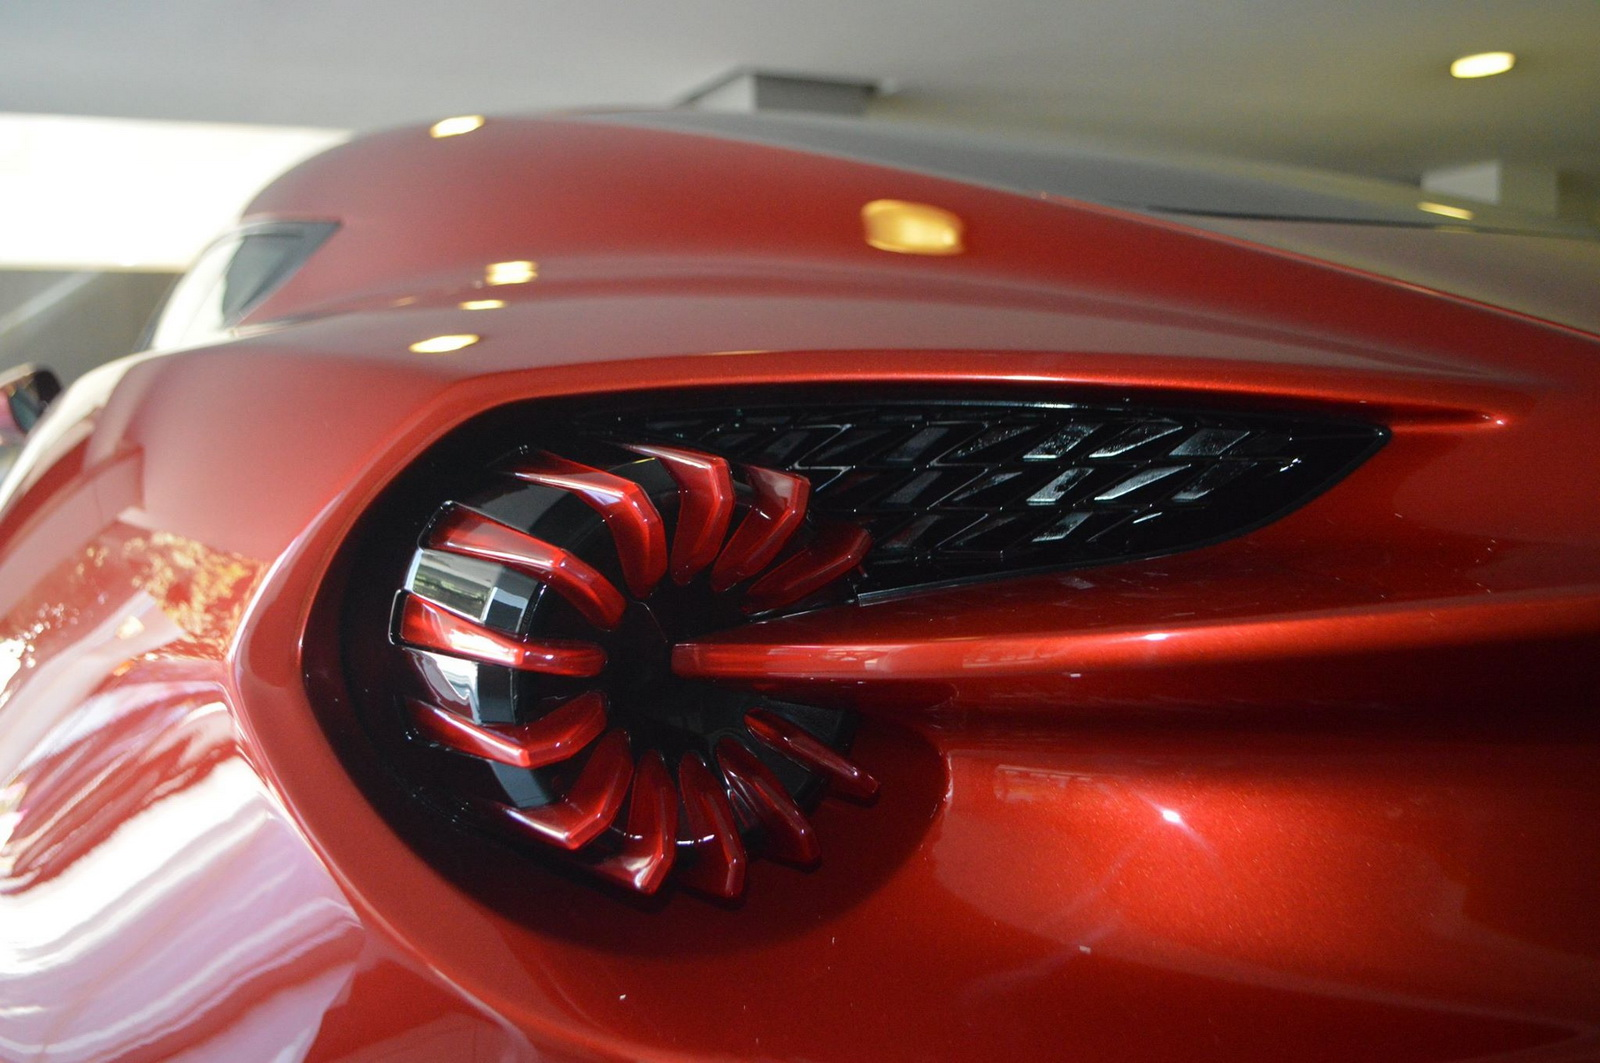 stunning aston martin vanquish zagato shows up in mexico [32 pics]